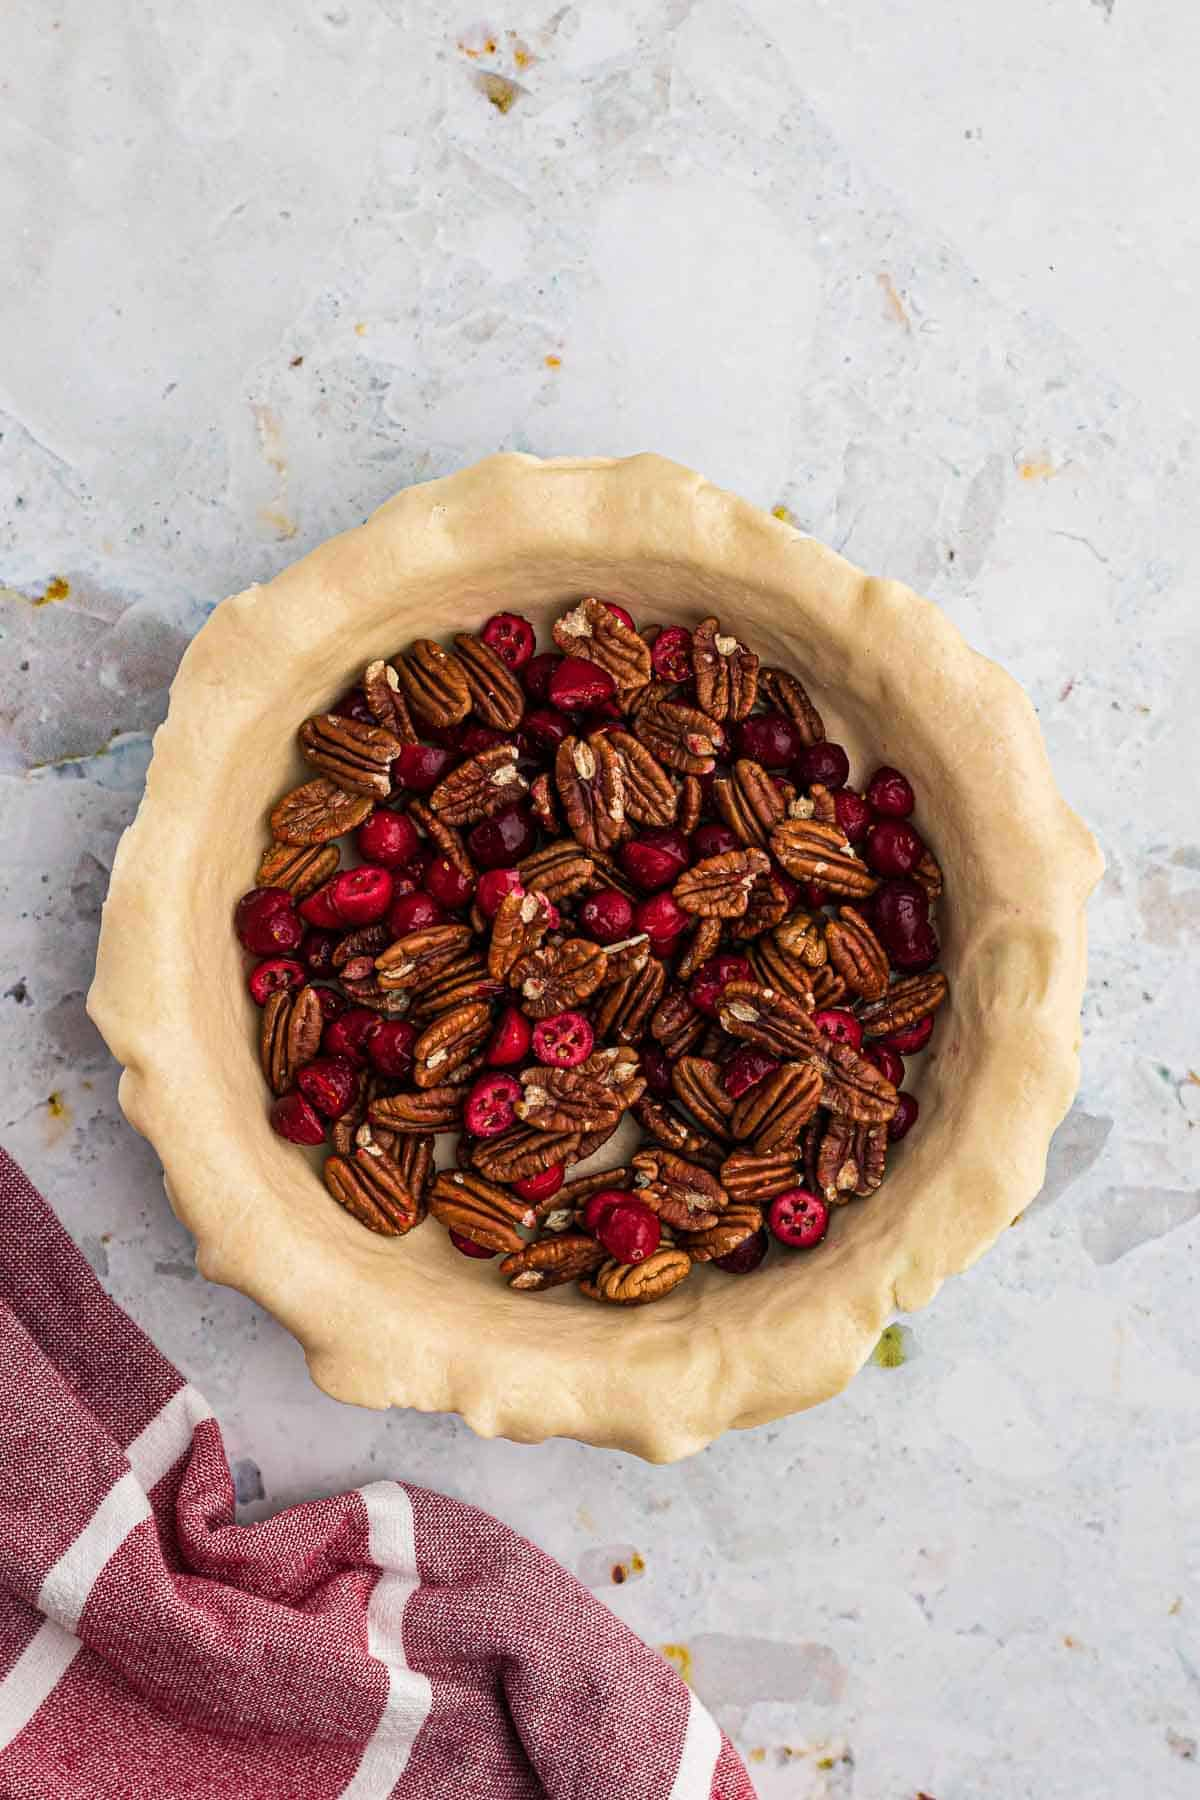 Pecans and cranberries in an unbaked pie crust.